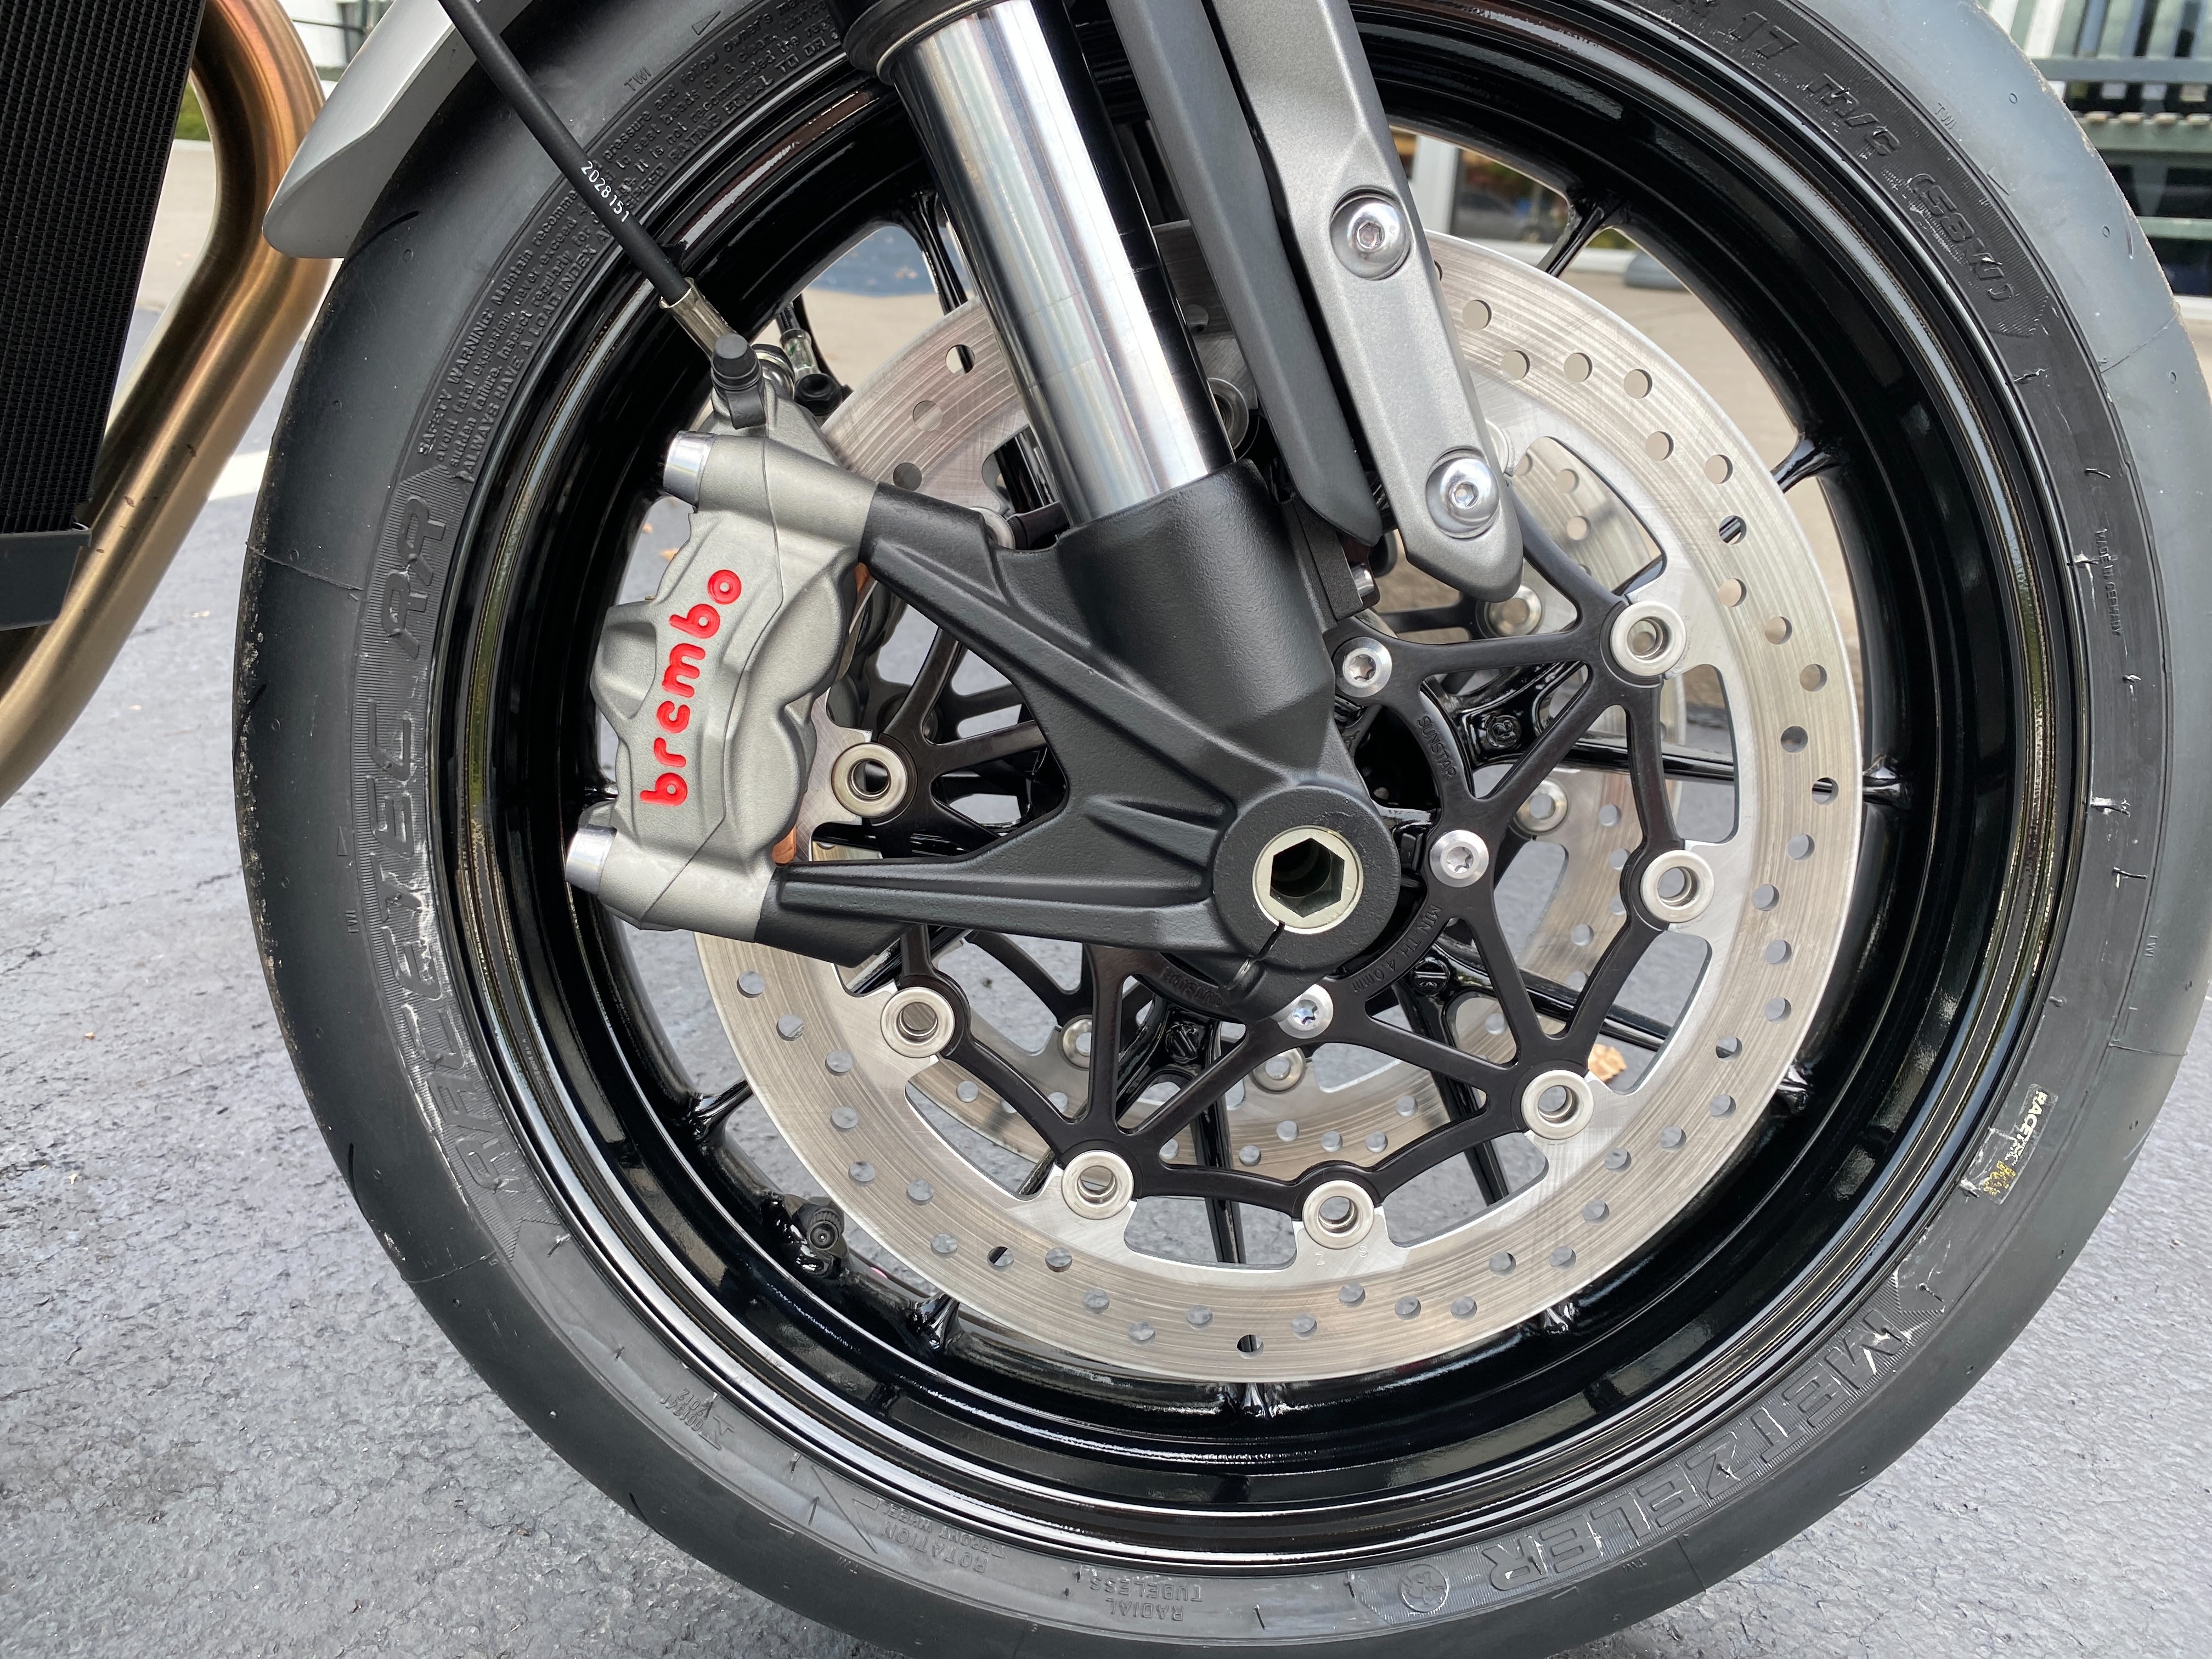 2022 Triumph Speed Twin Base at Frontline Eurosports